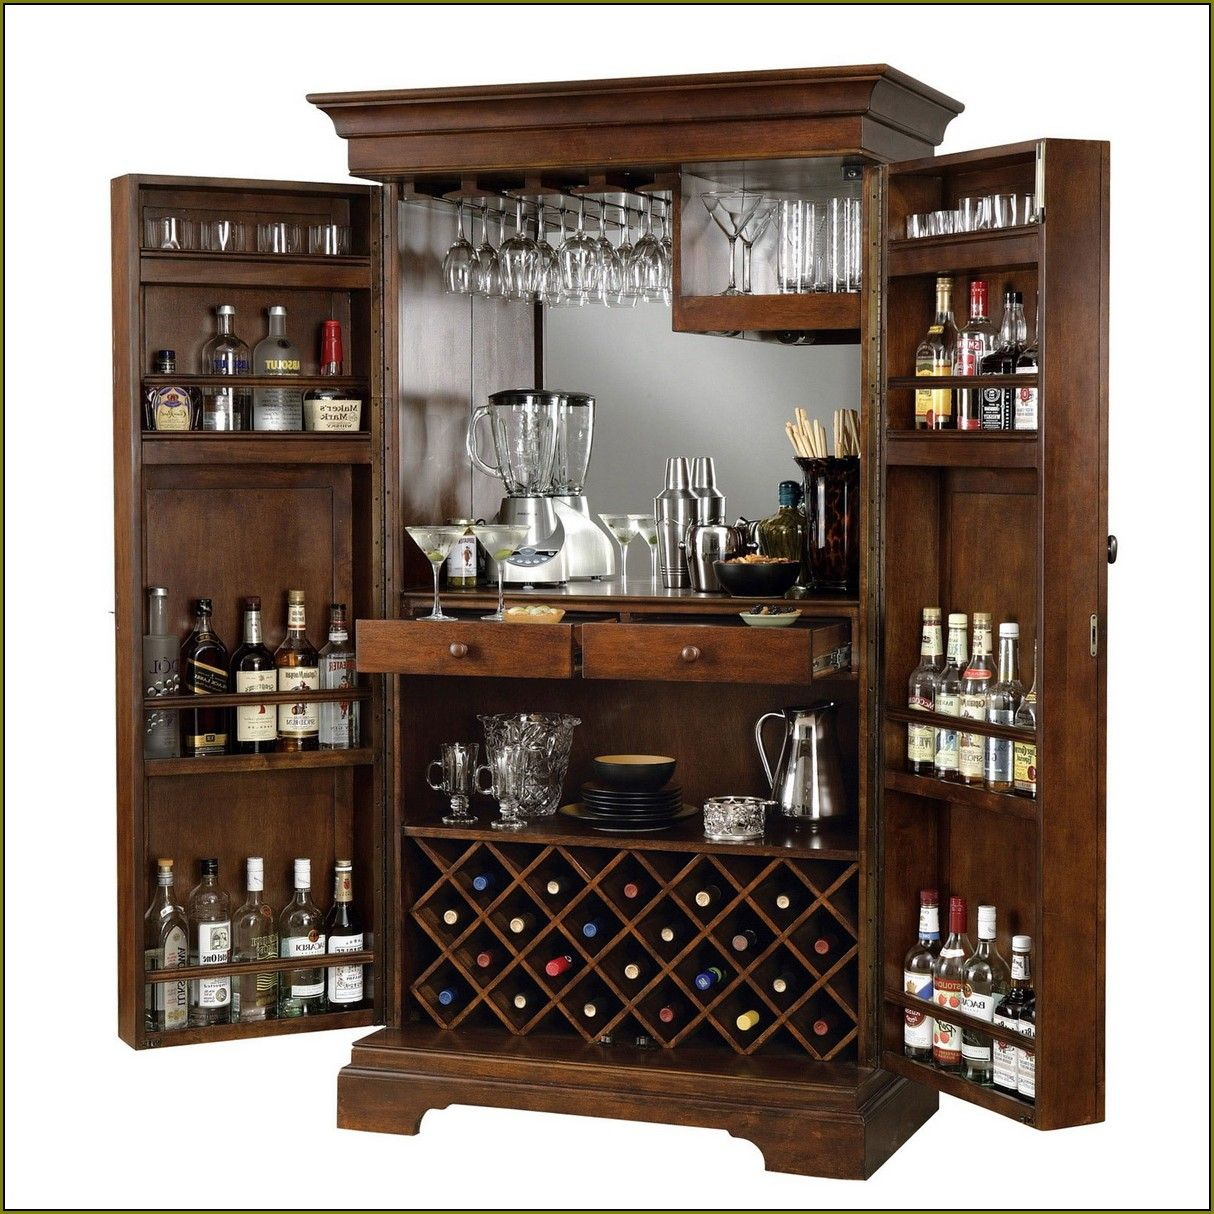 Elegant liquor cabinet ikea for home furniture ideas for How to build a mini bar cabinet